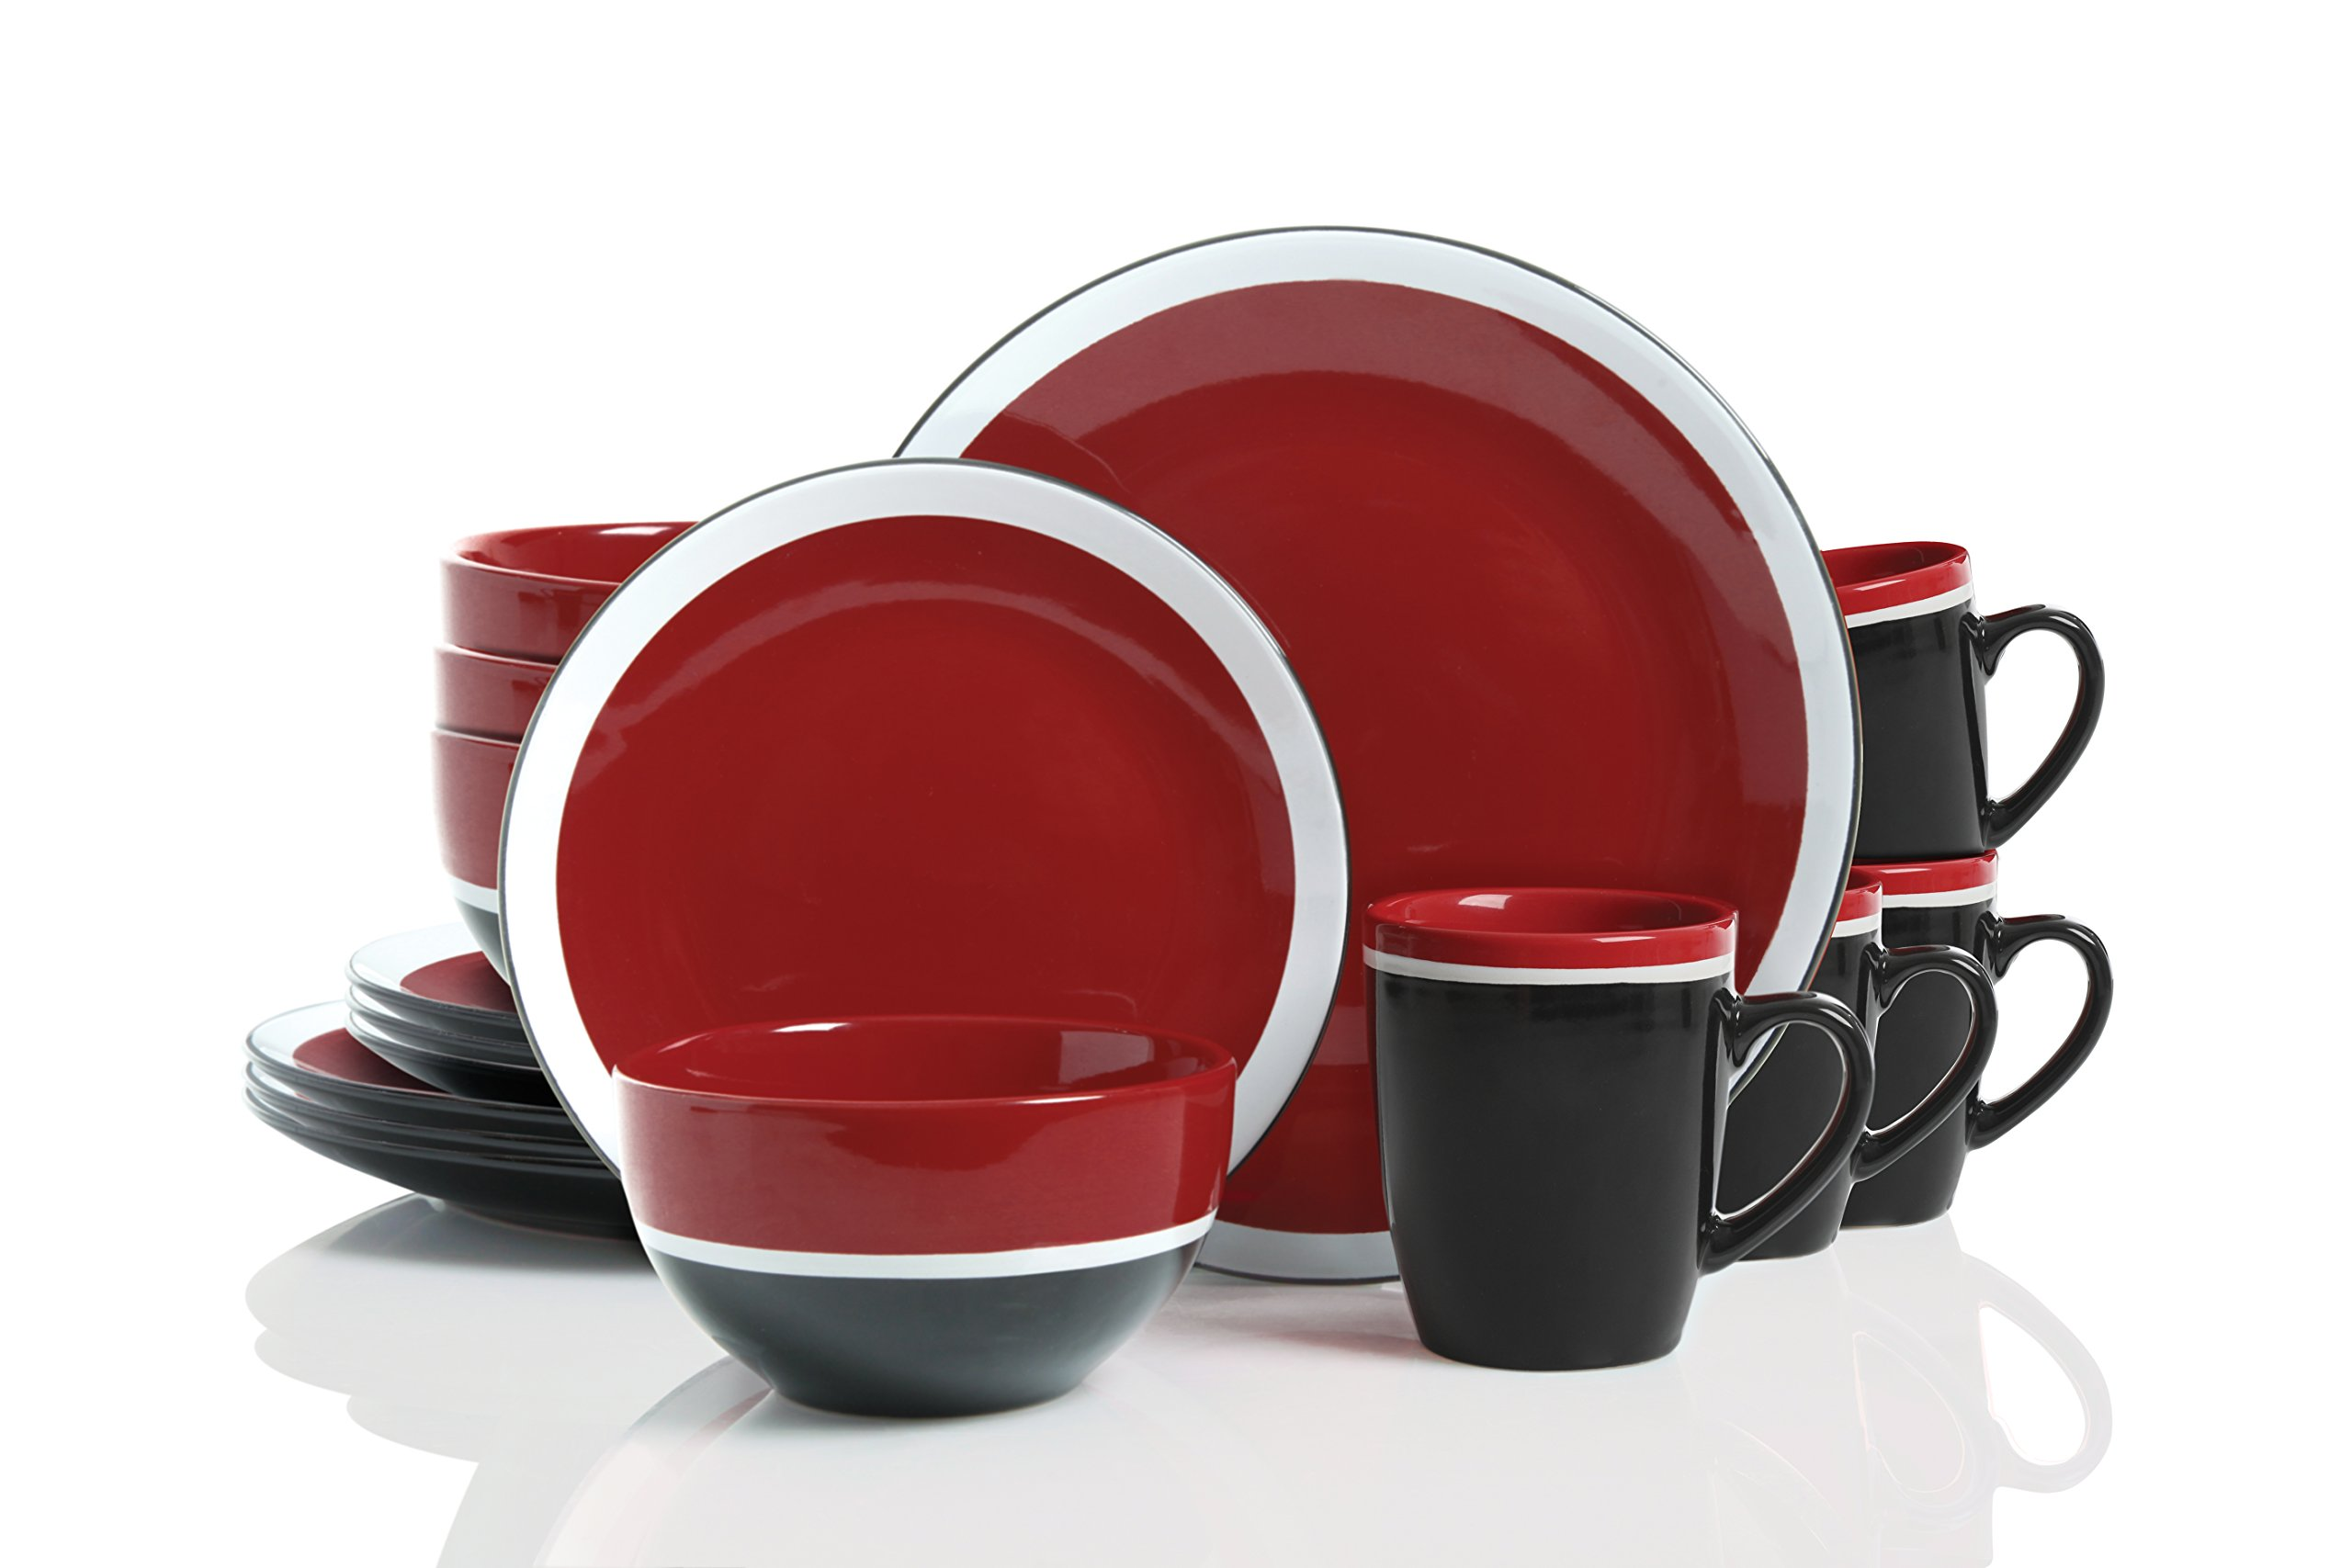 Gibson Studio 114390.16RM Color Eclipse 16 Piece Stoneware Dinnerware Set, Red